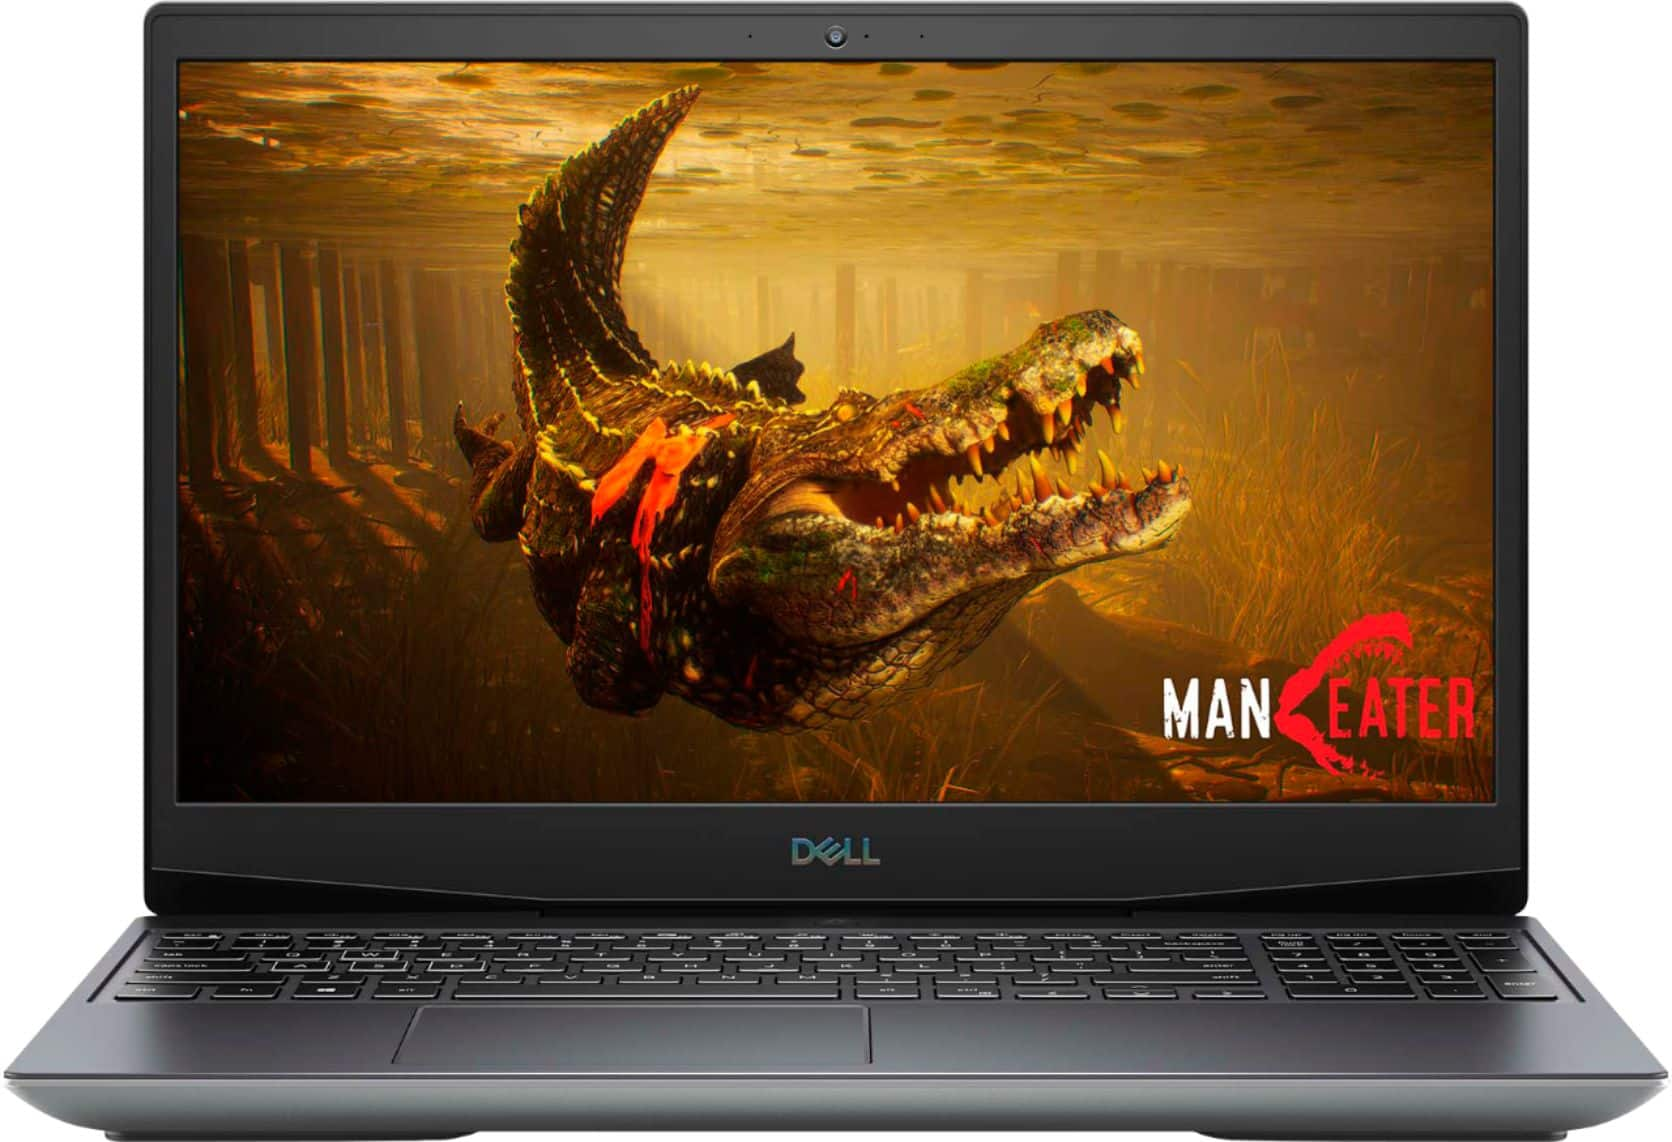 Dell G5 15 SE: 15.6'' FHD VA, Ryzen 5 4600H, RX 5600M, 256GB PCIe SSD, Win10H from $862.39 + F/S